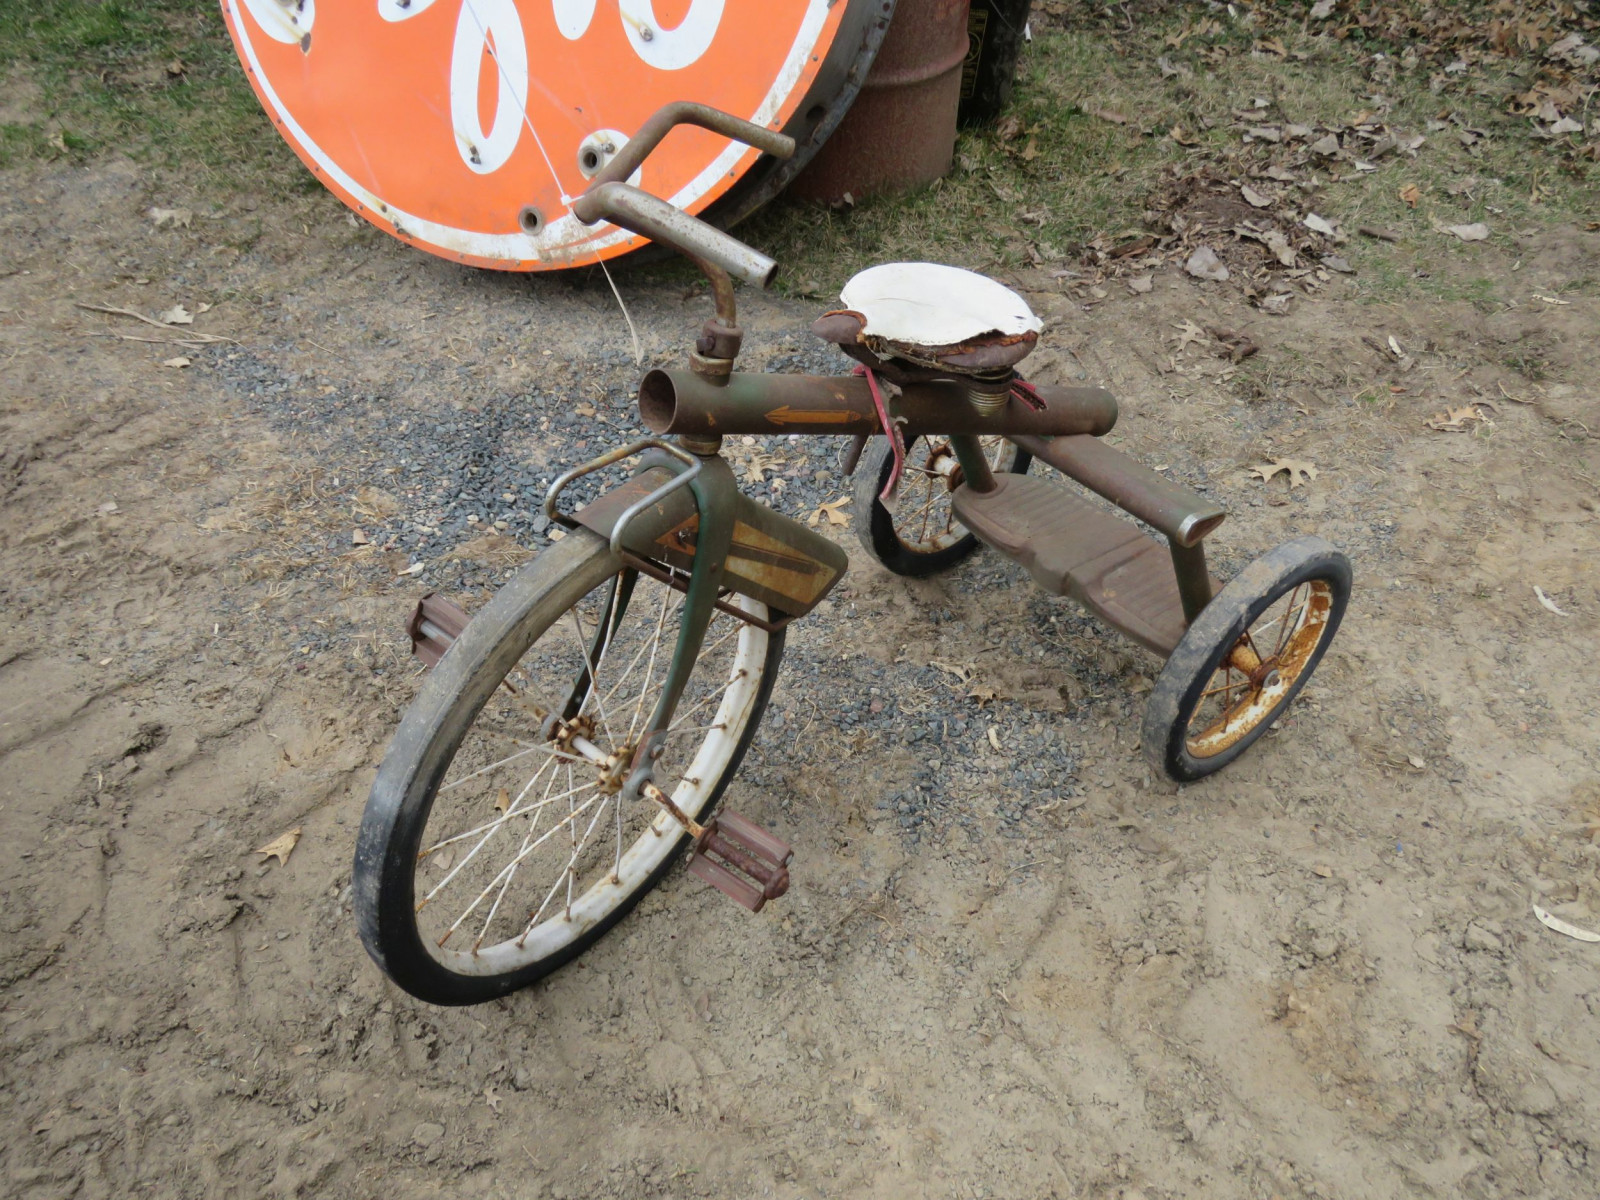 Vintage Tricycle with Wagon - Image 1